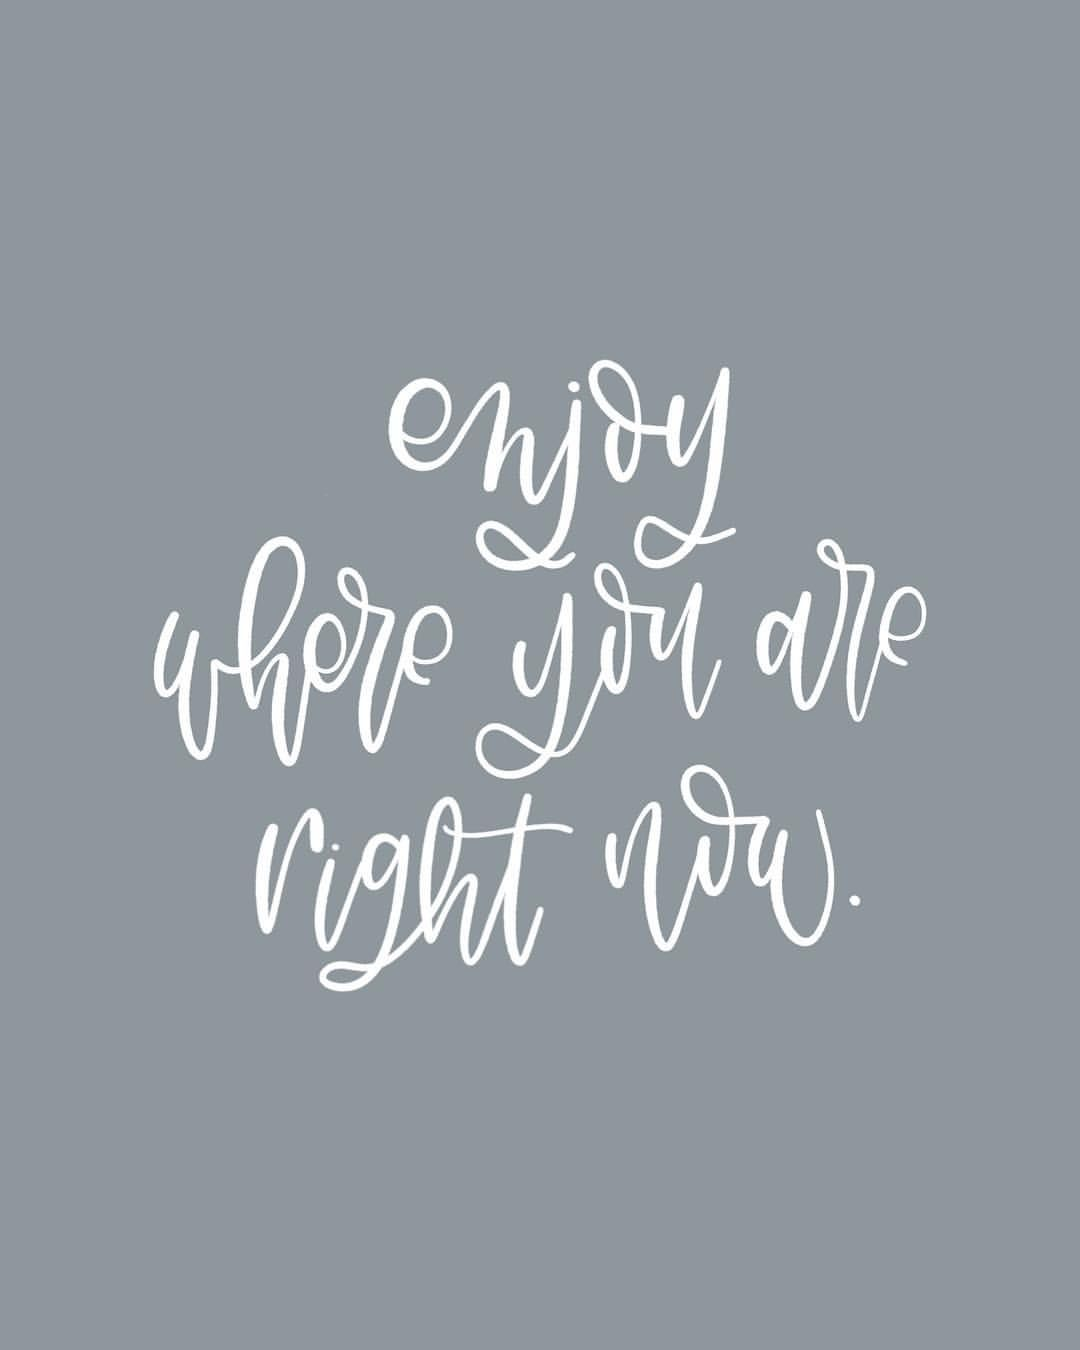 Enjoy where are you are right now hand lettered quote